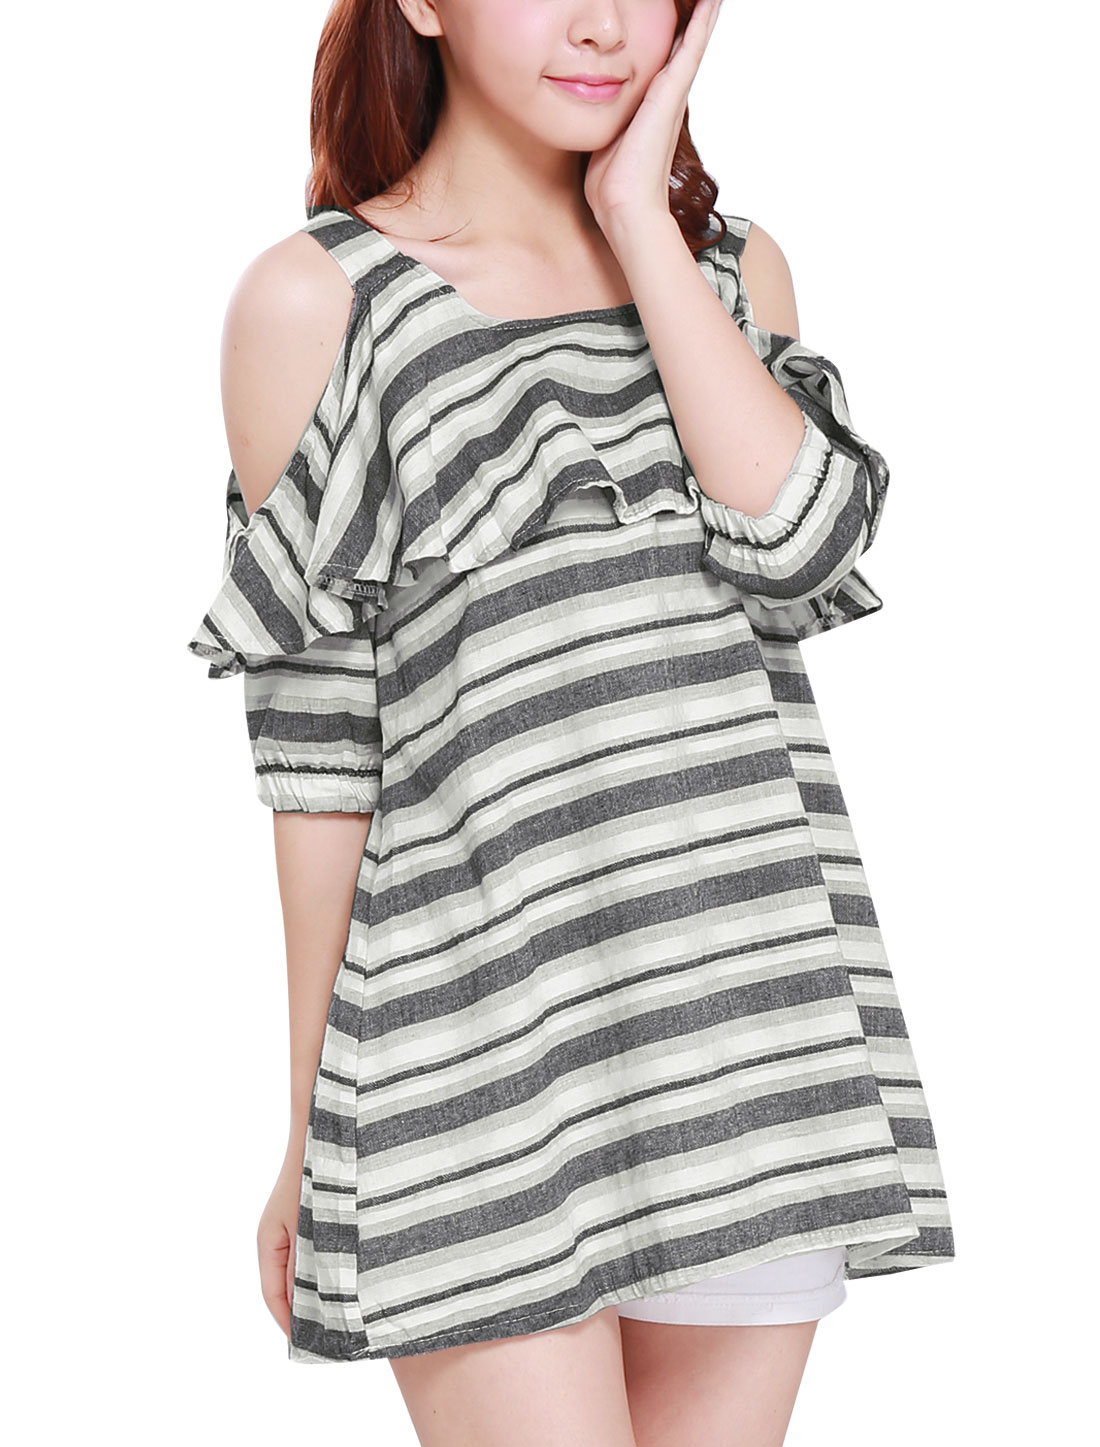 Lady Elastic Cuffs Stripes Ruffled Upper Linen Tunic Top Black White S